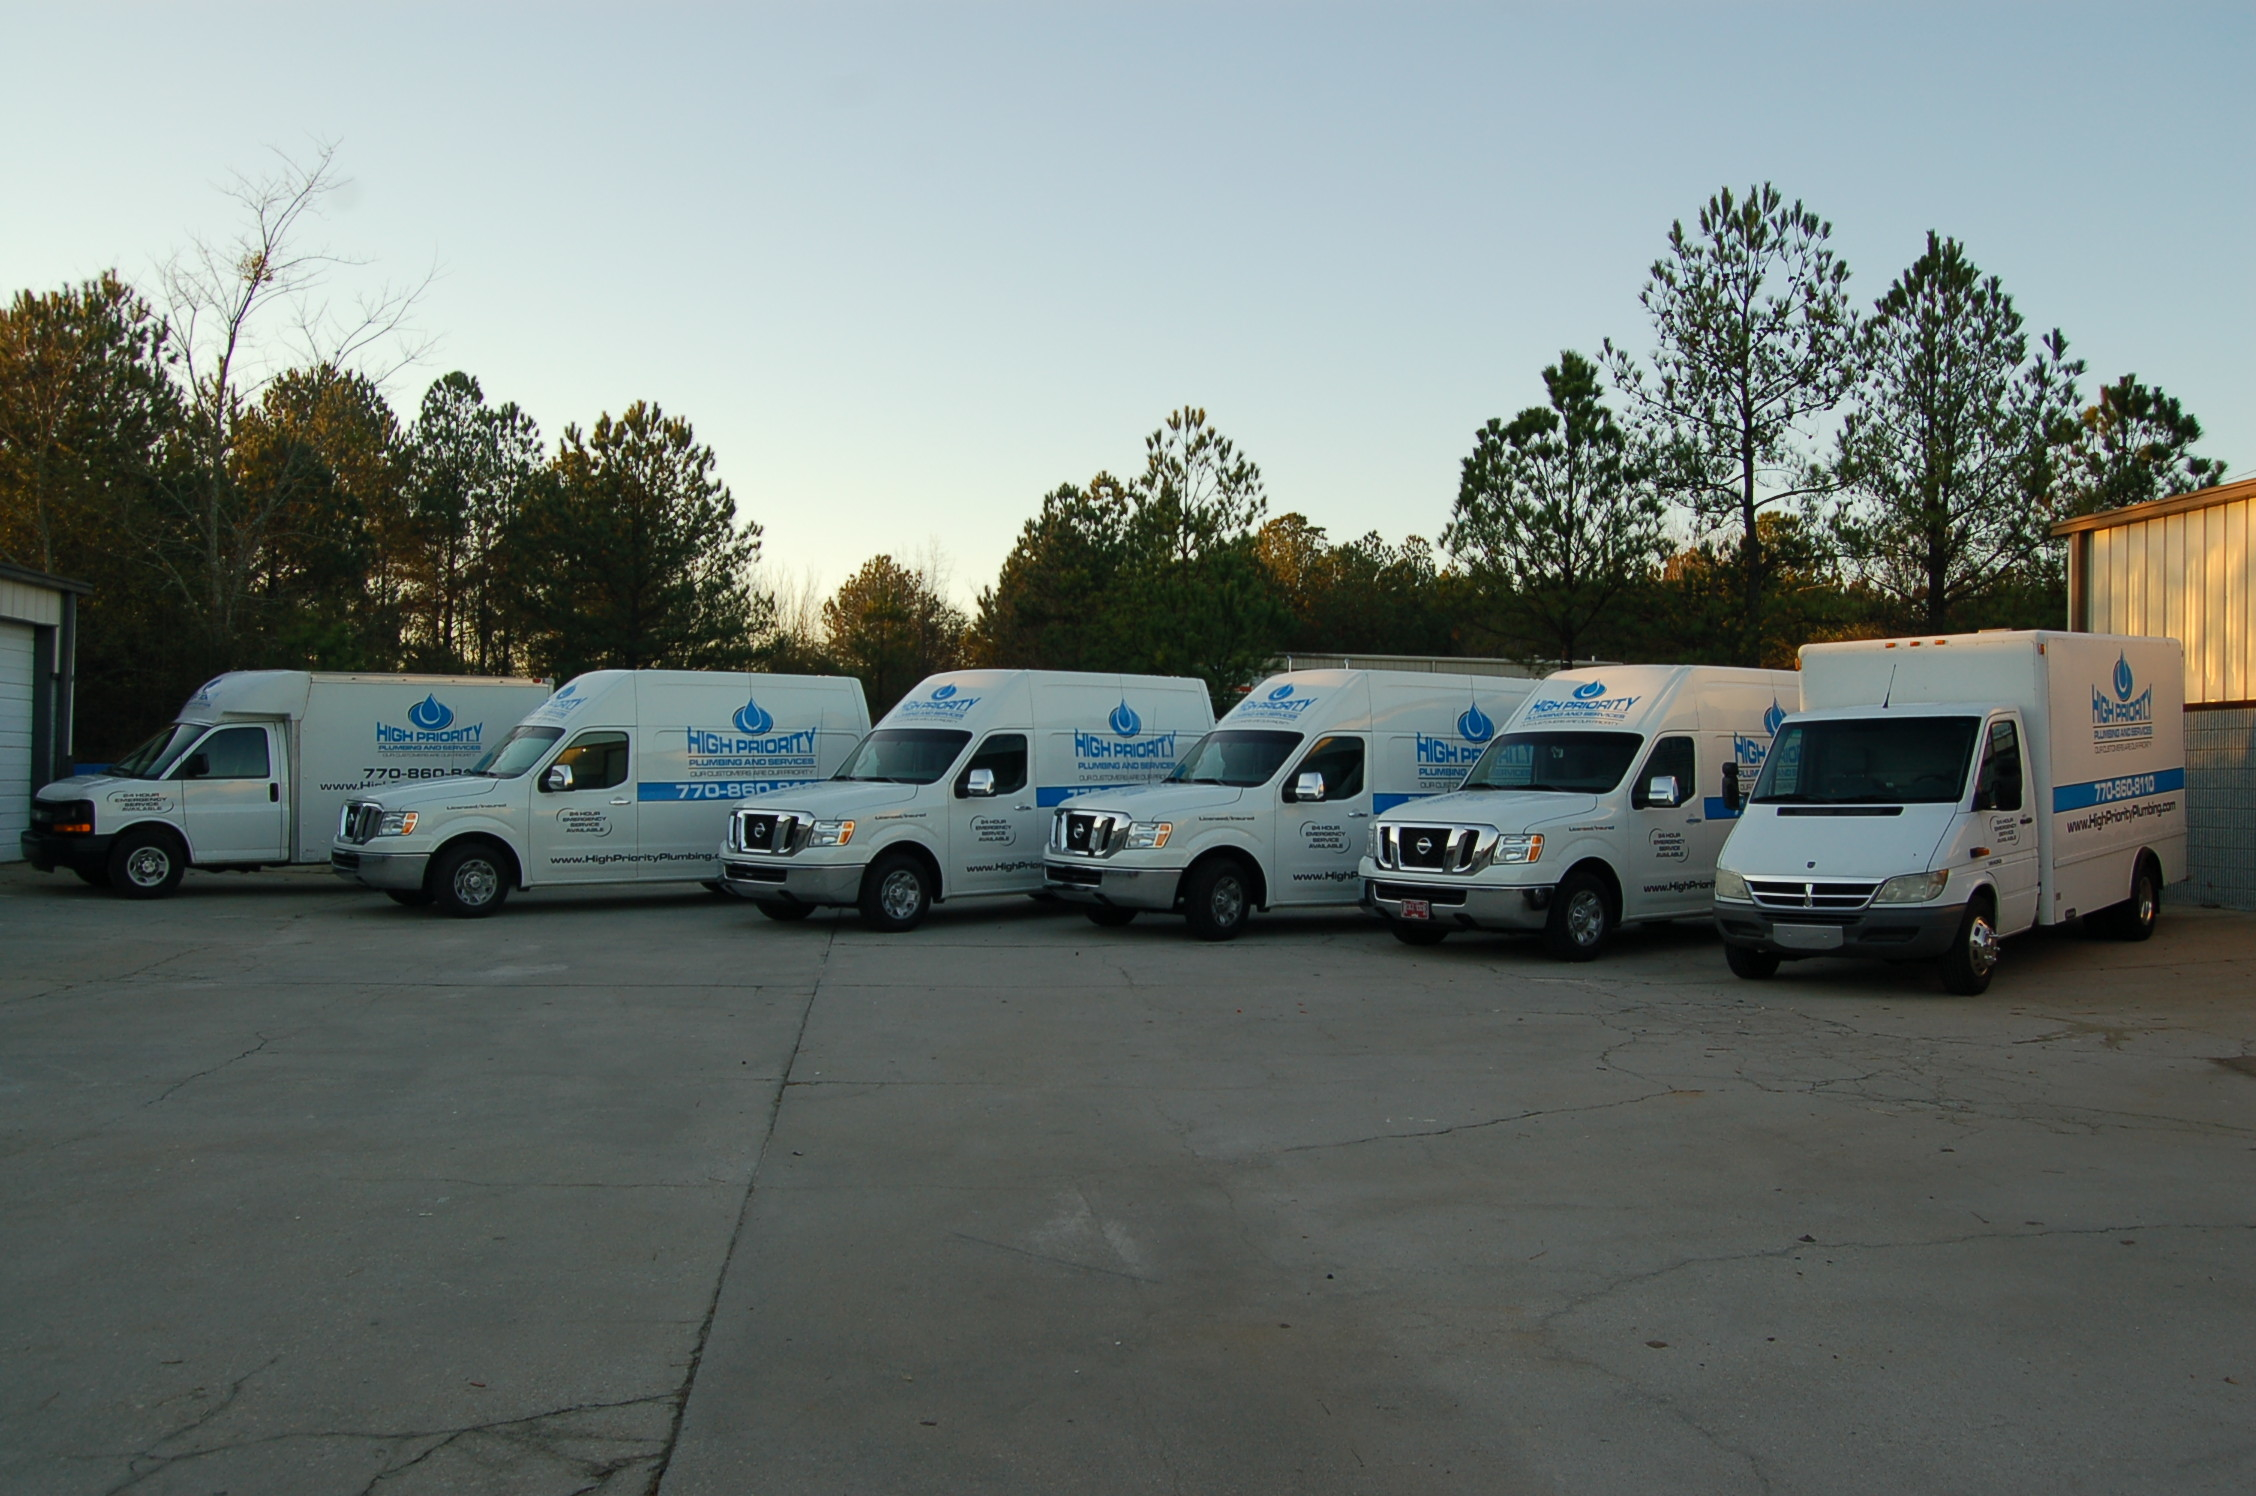 High Priority Plumbing and Services, Inc. - Conyers, GA -